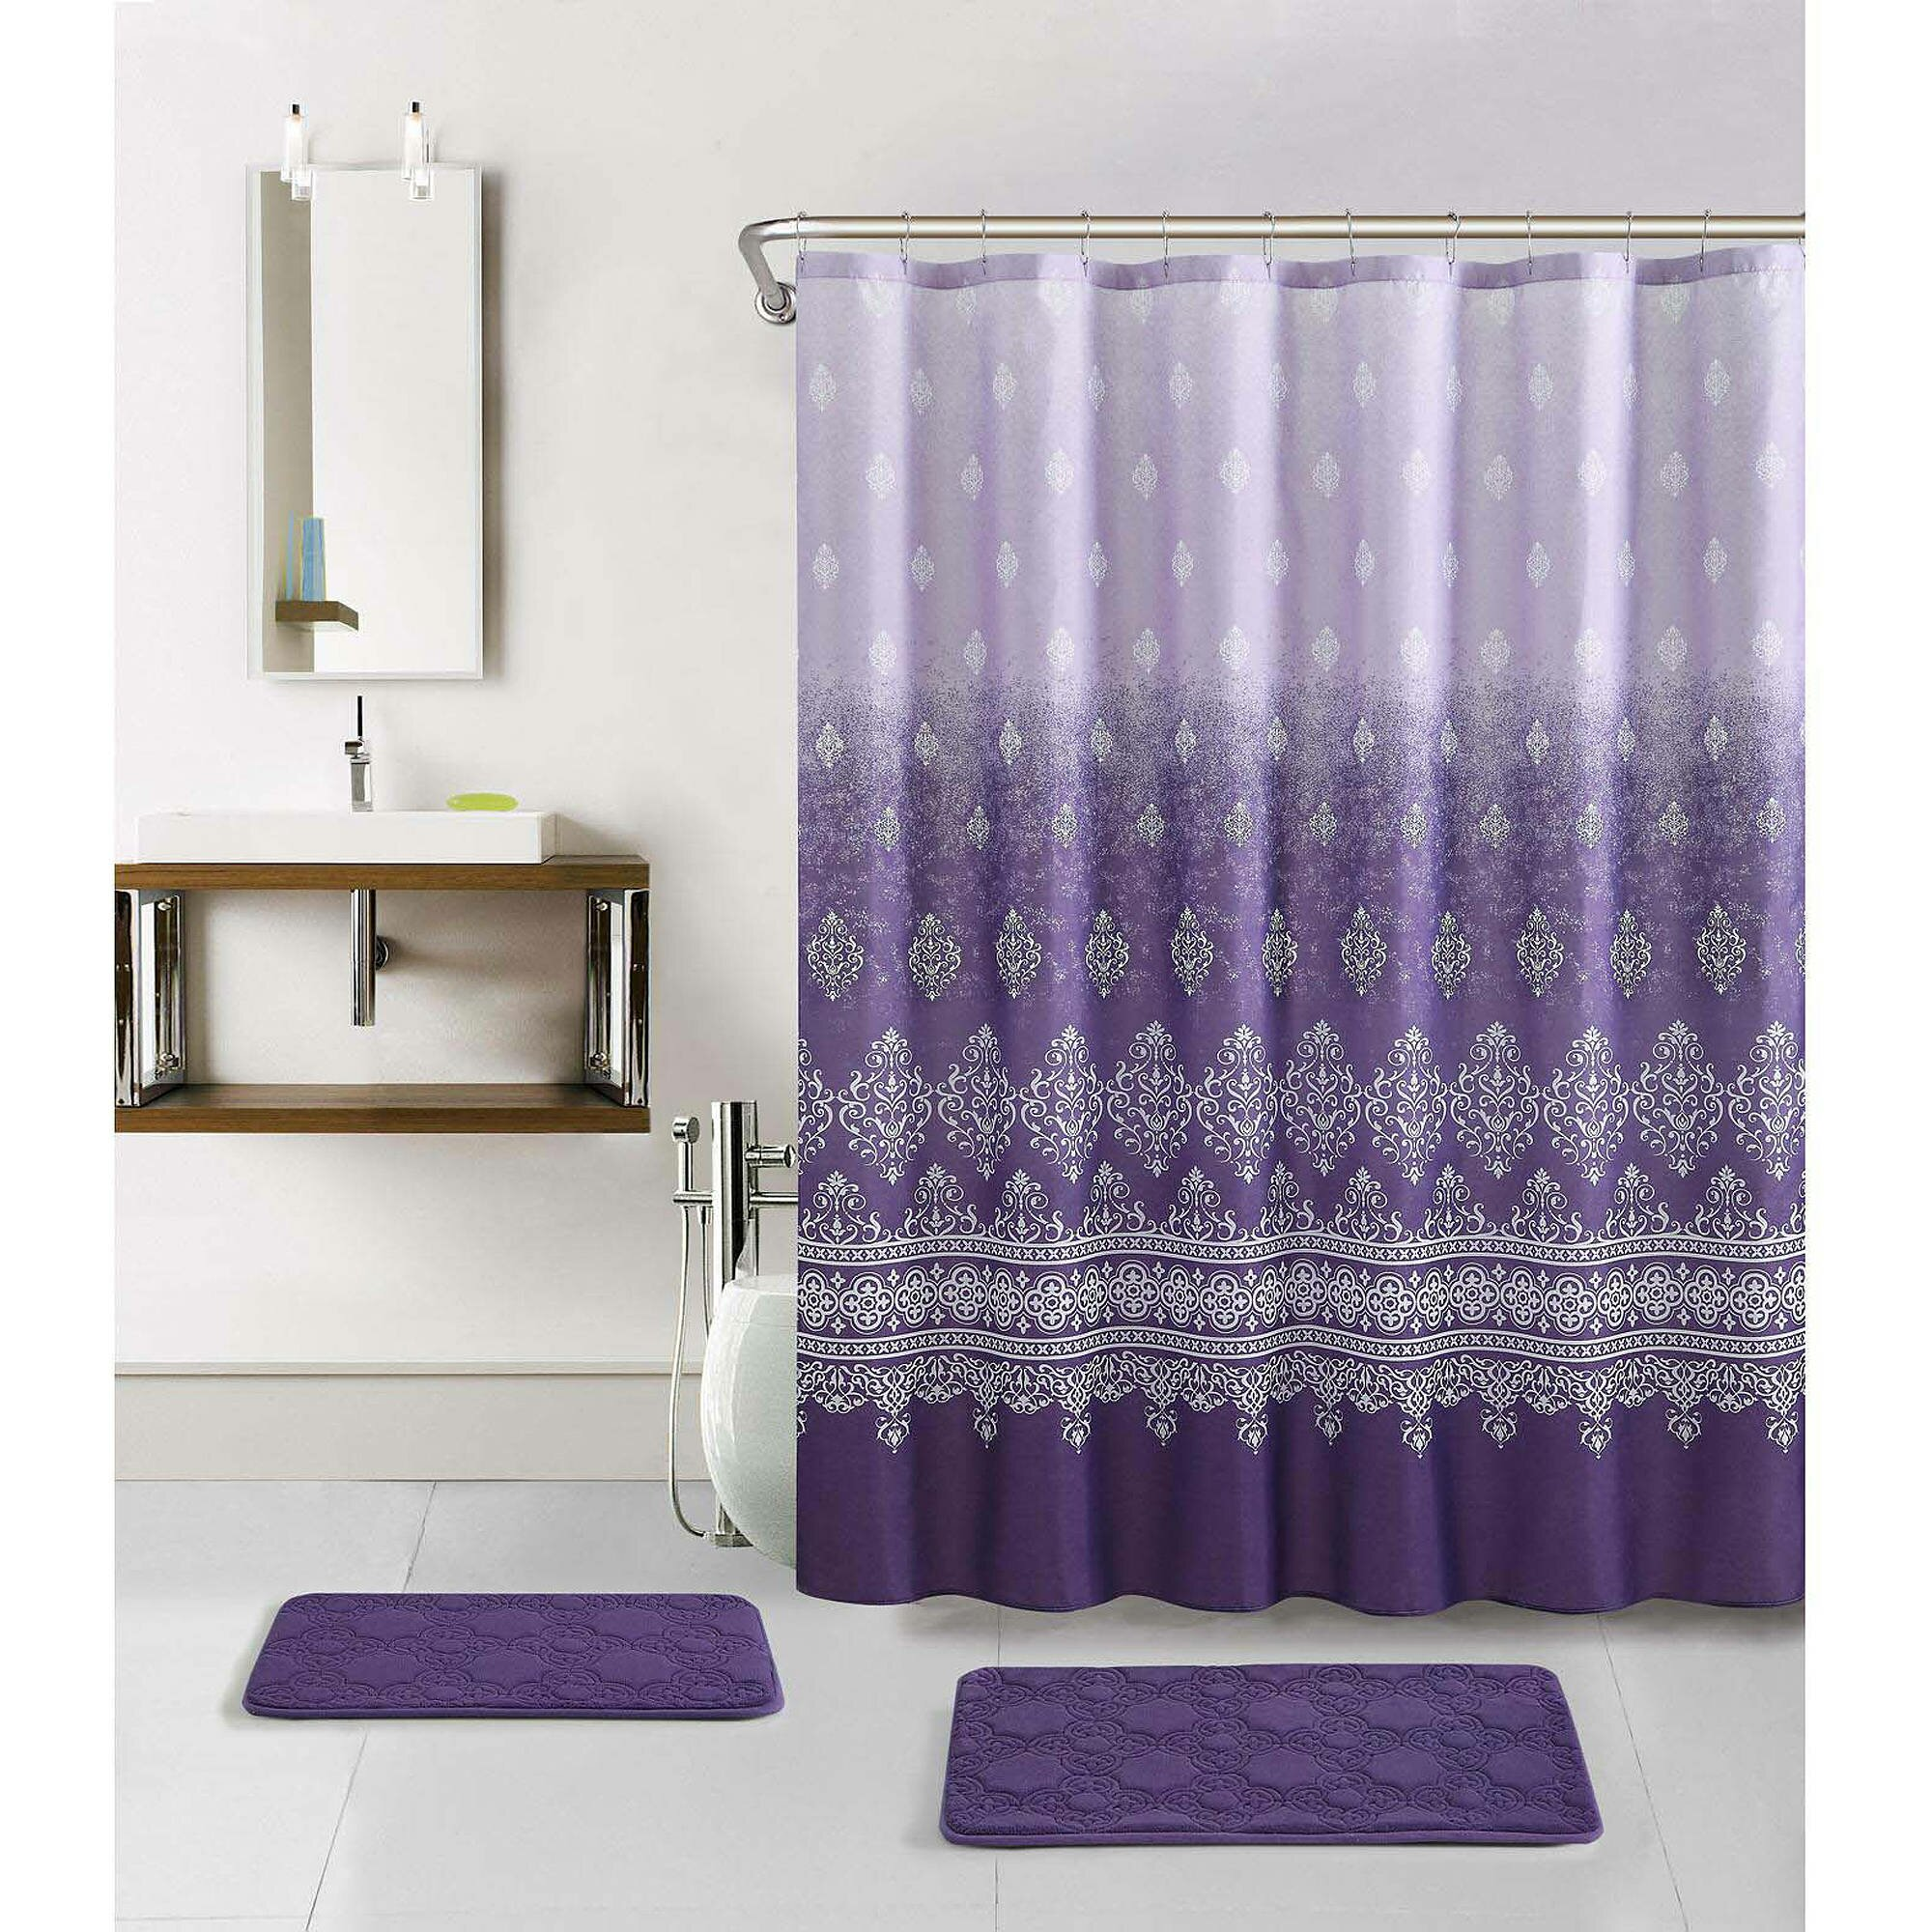 curtain walmart shower curtain for your bathroom